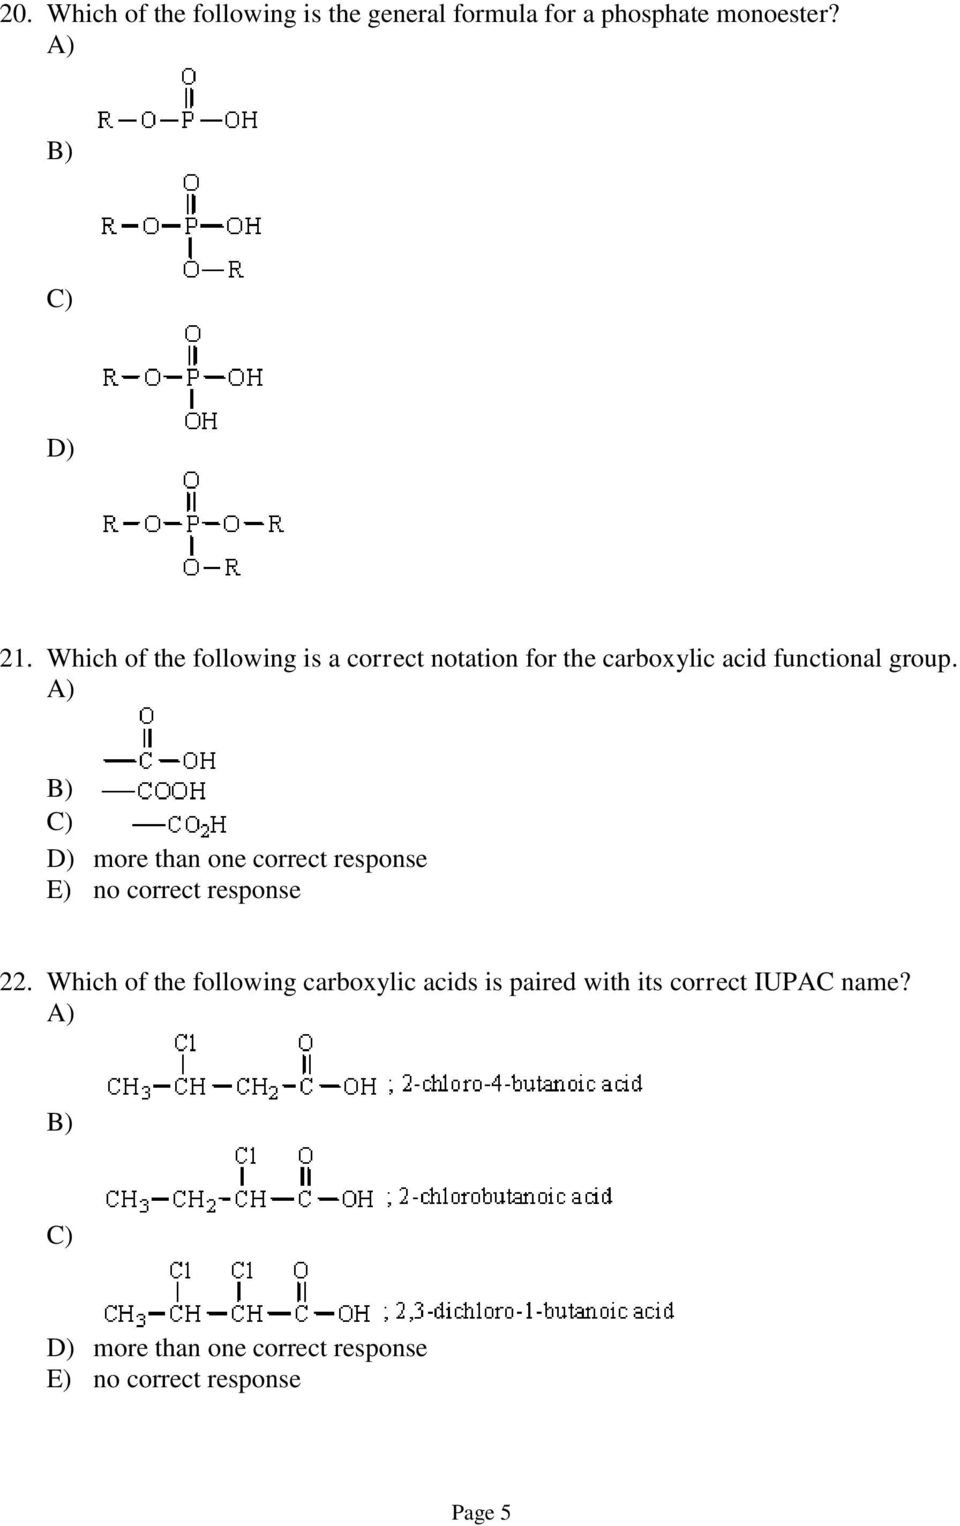 Which of the following is a correct notation for the carboxylic acid